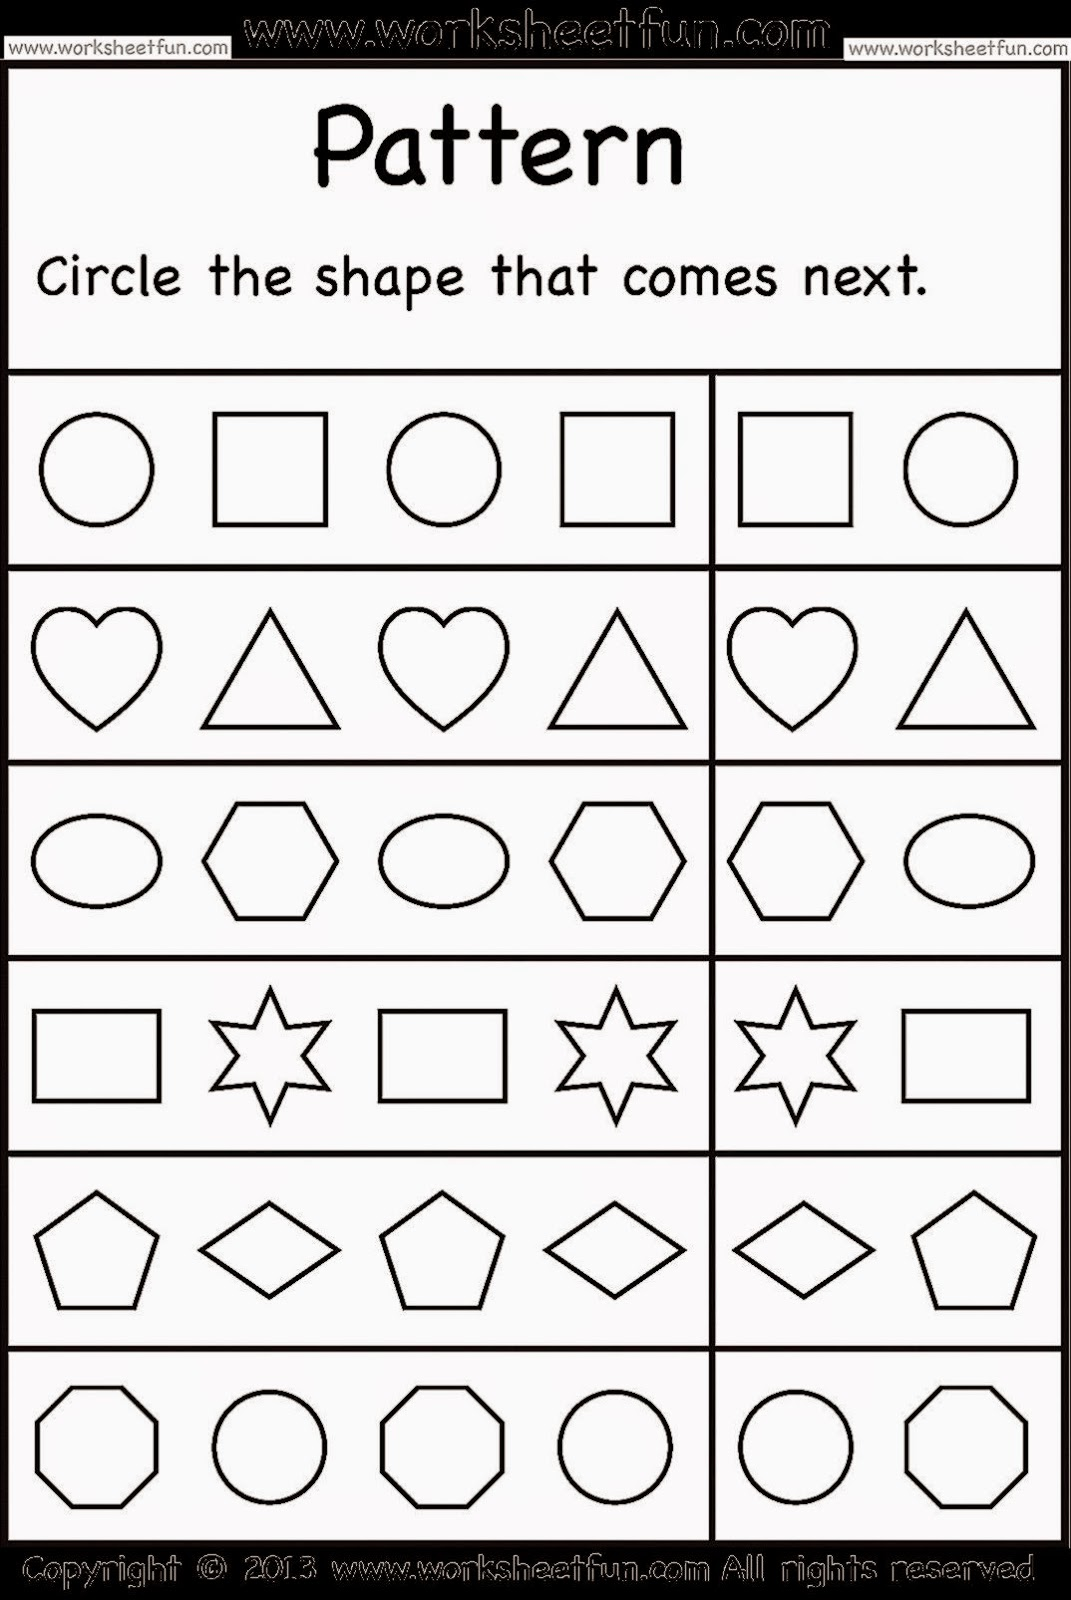 Printable Kindergarten Worksheets : Kindergarten worksheets free coloring sheet